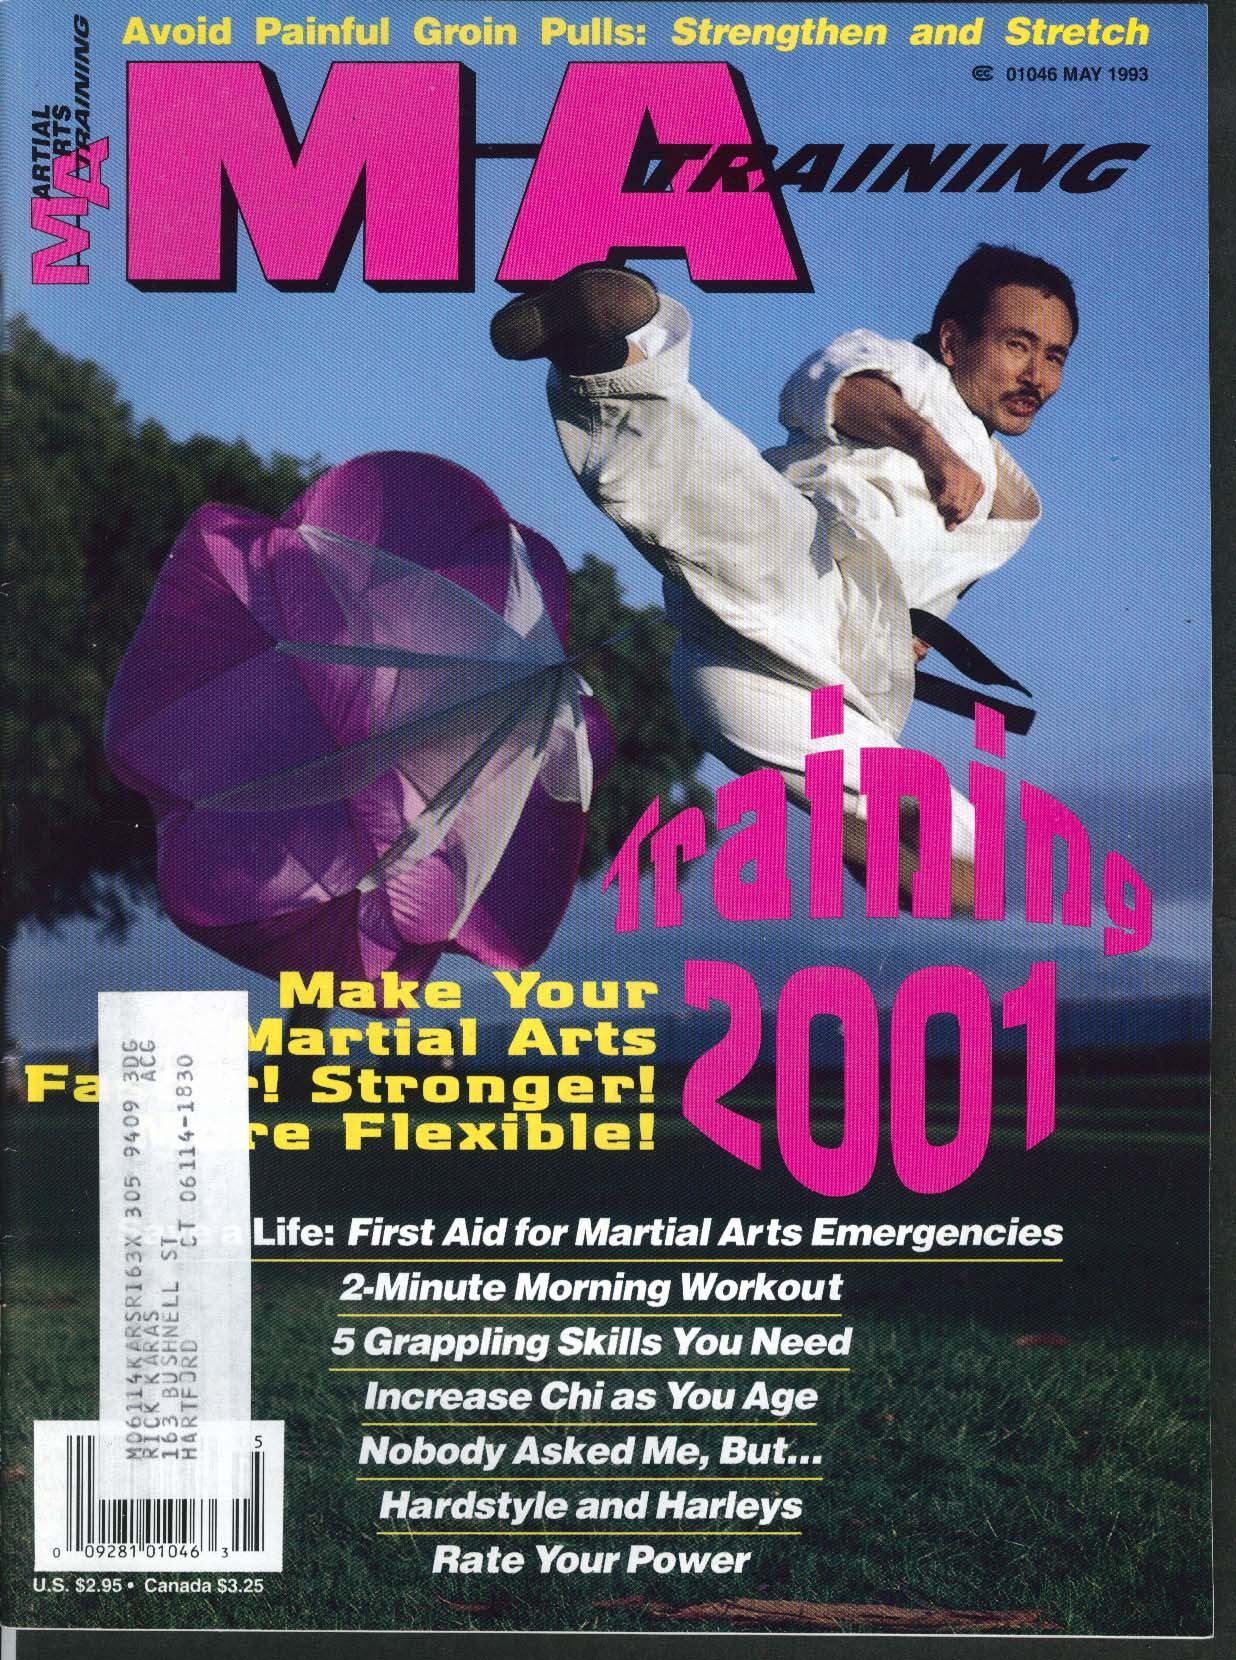 Image for MARTIAL ARTS MA TRAINING Training 2001 Chi Power Groin Pull Avoidance 5 1993